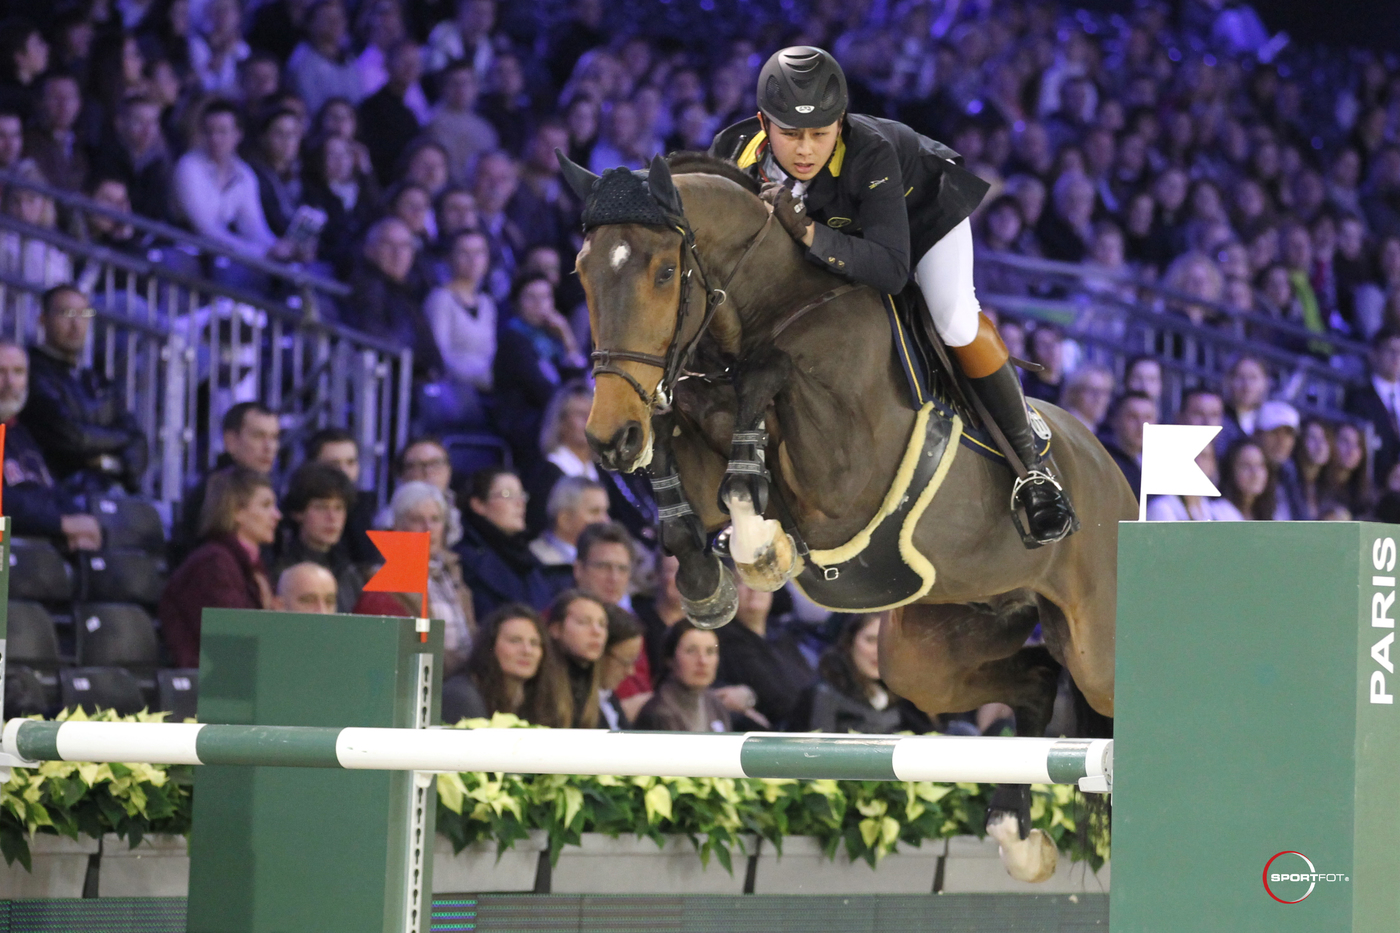 Longines Show Jumping Event: Hong Kong Masters Signs up Longines as Title Sponsor - a commitment of very long duration 2